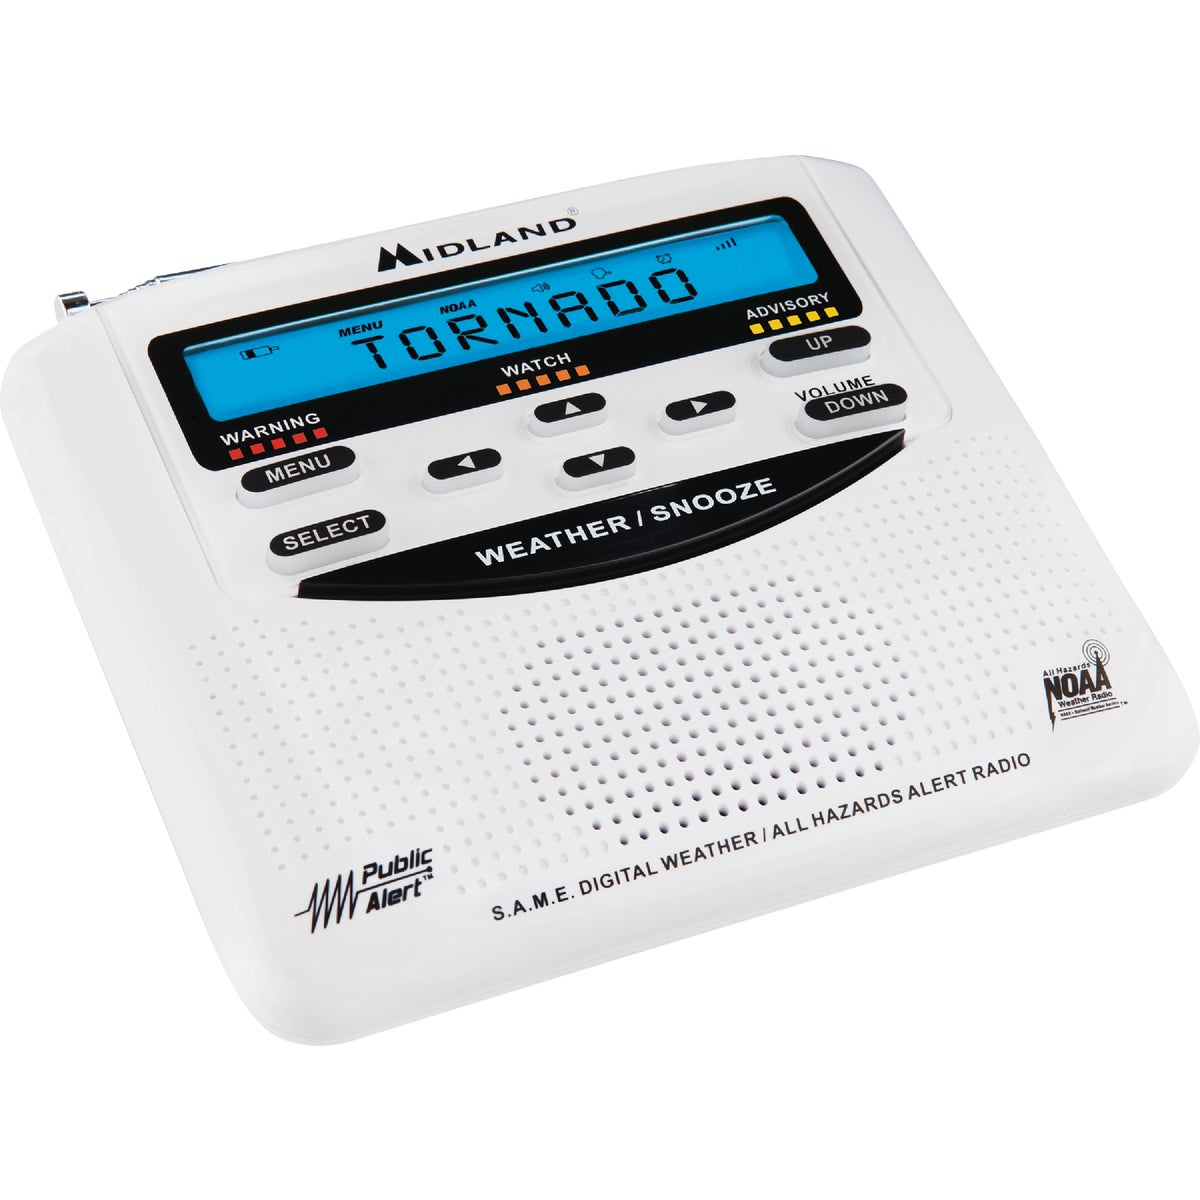 CLOCK AND WEATHER RADIO - WR-120B by Midland Radio Corp